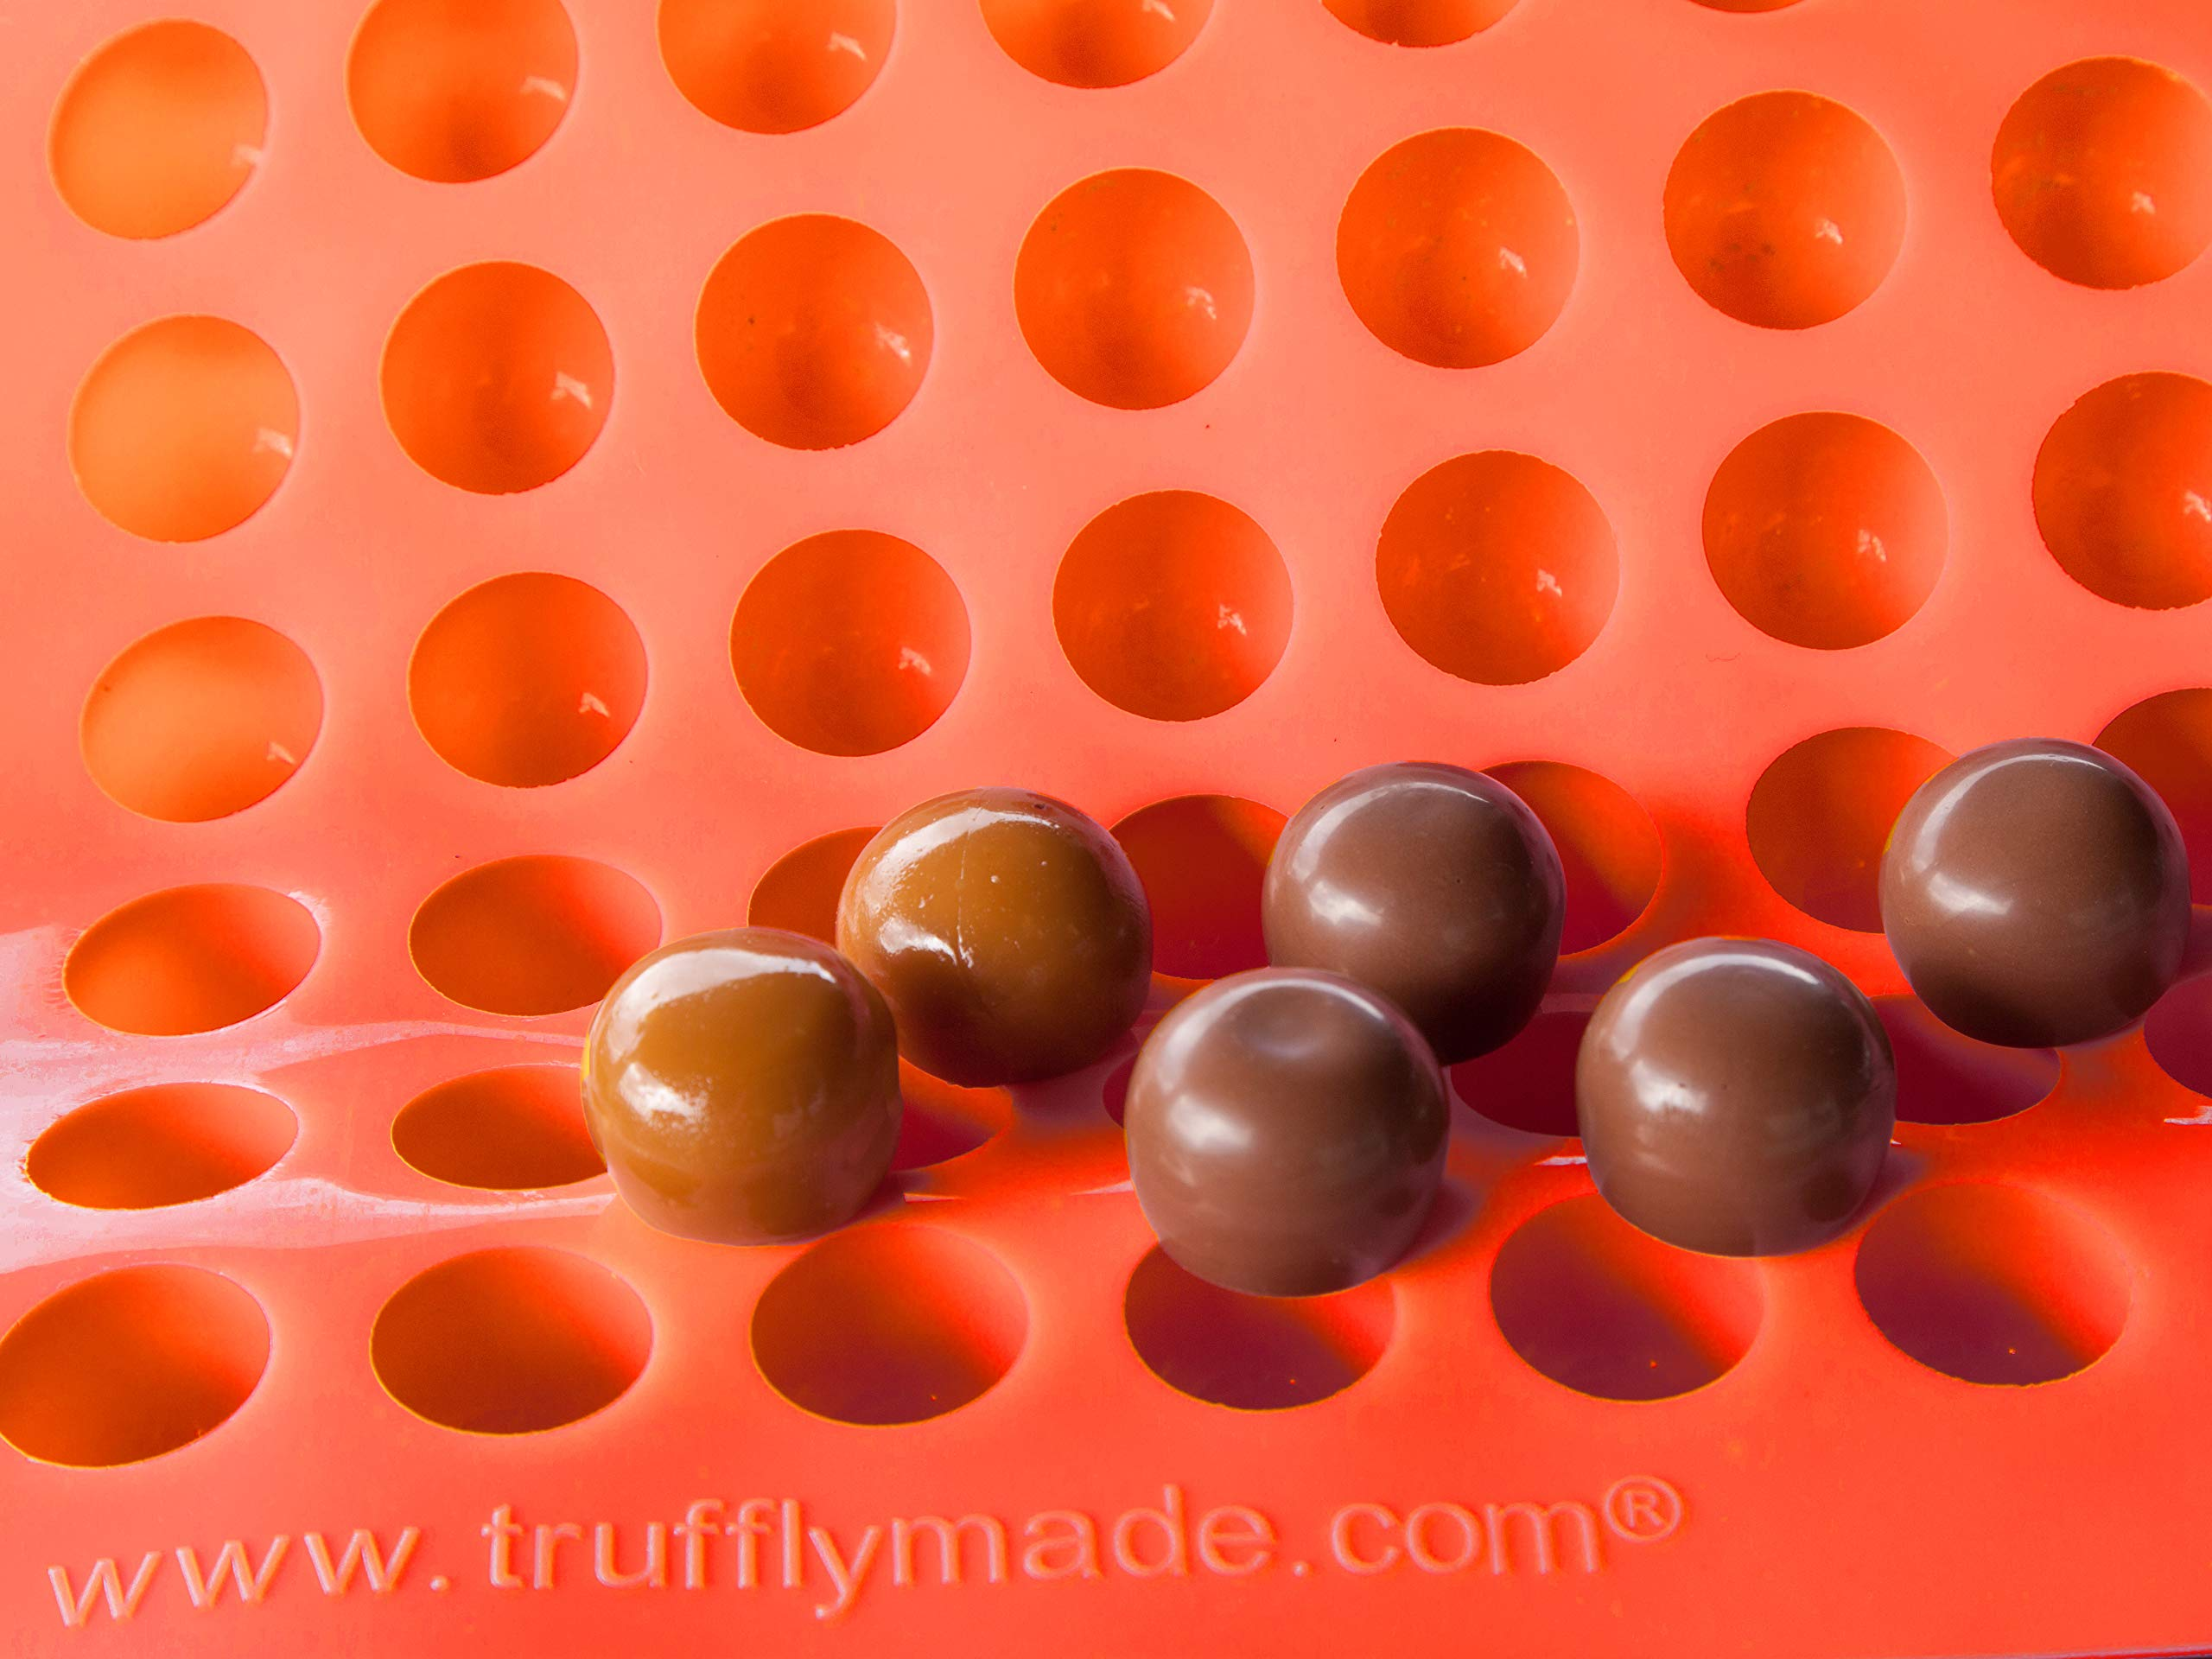 Silicone Chocolate Medium Classic Round Chocolate Truffle, Jelly and Candy Mold, 63 cavities, One step pop-out by Truffly Made (Image #5)